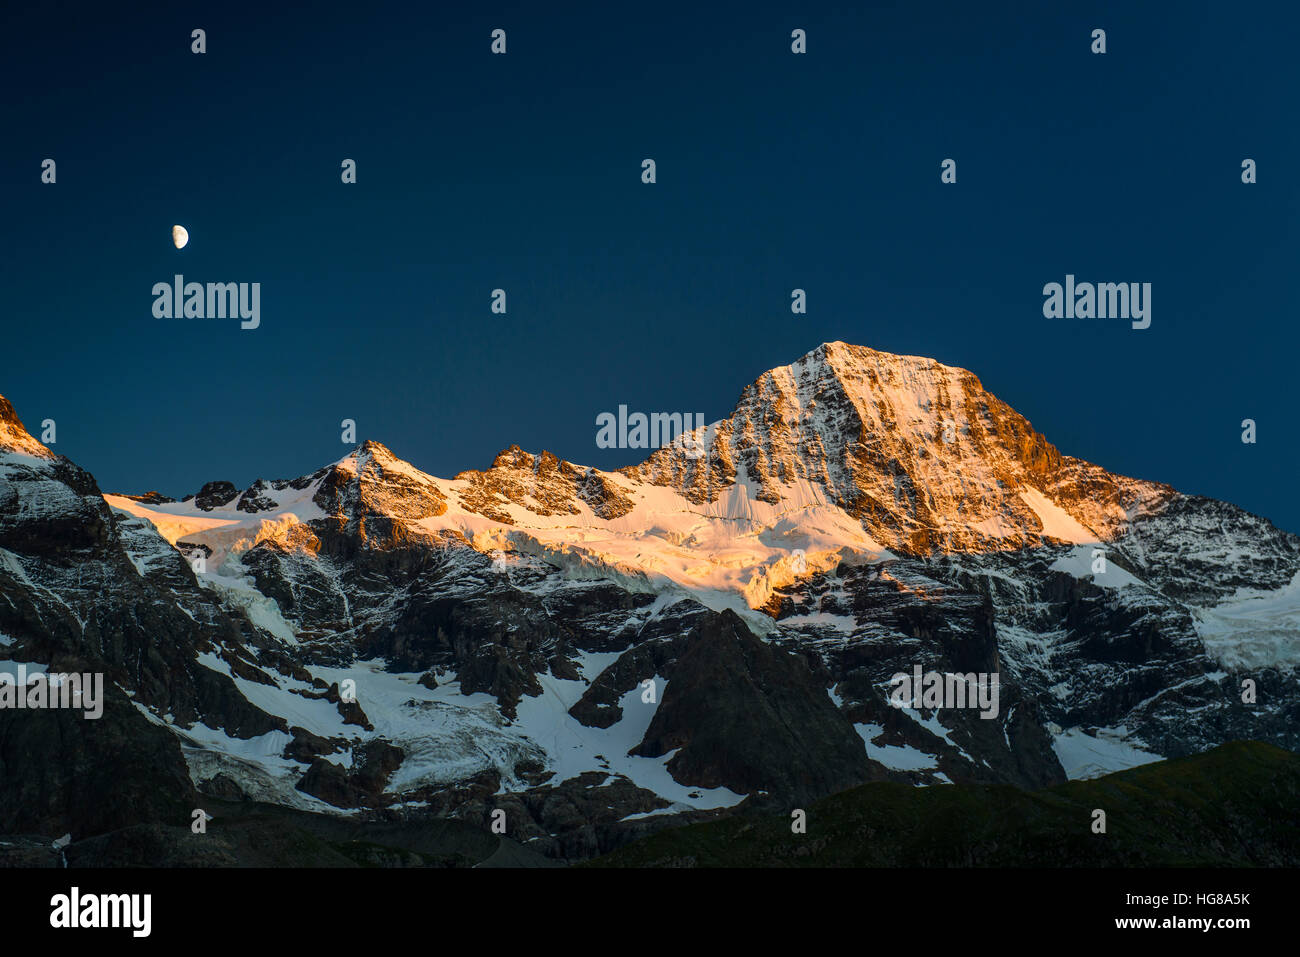 Snow-capped Breithorn with moon at sunset, Lauterbrunnen Valley, Swiss Alps, Jungfrau-Aletsch, Bernese Oberland - Stock Image